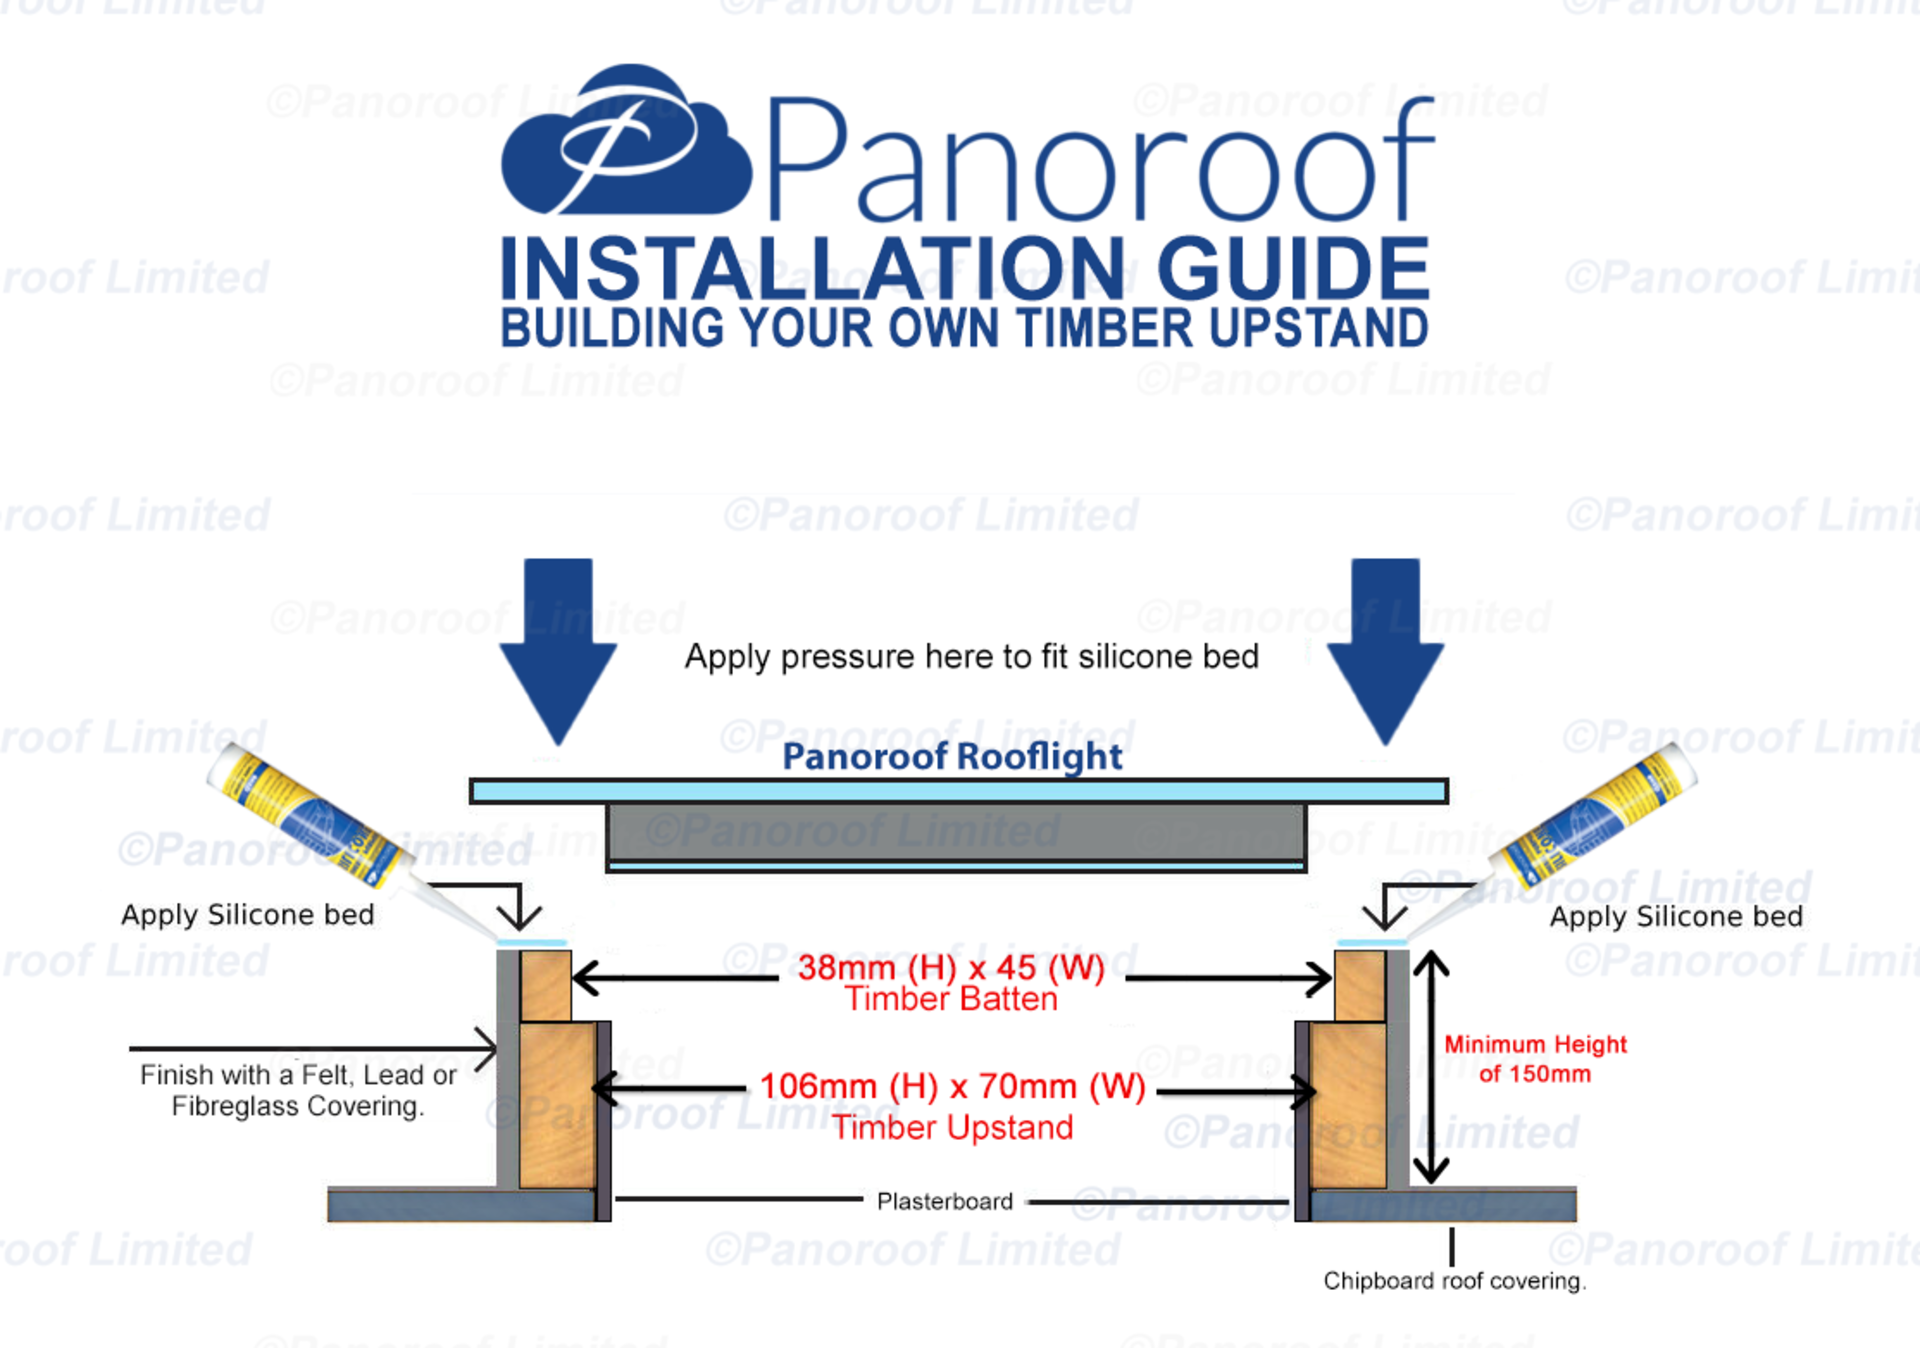 Panoroof 2000x2000mm (inside Size Visable glass area) Seamless Glass Skylight Flat Roof Rooflight - Image 3 of 6